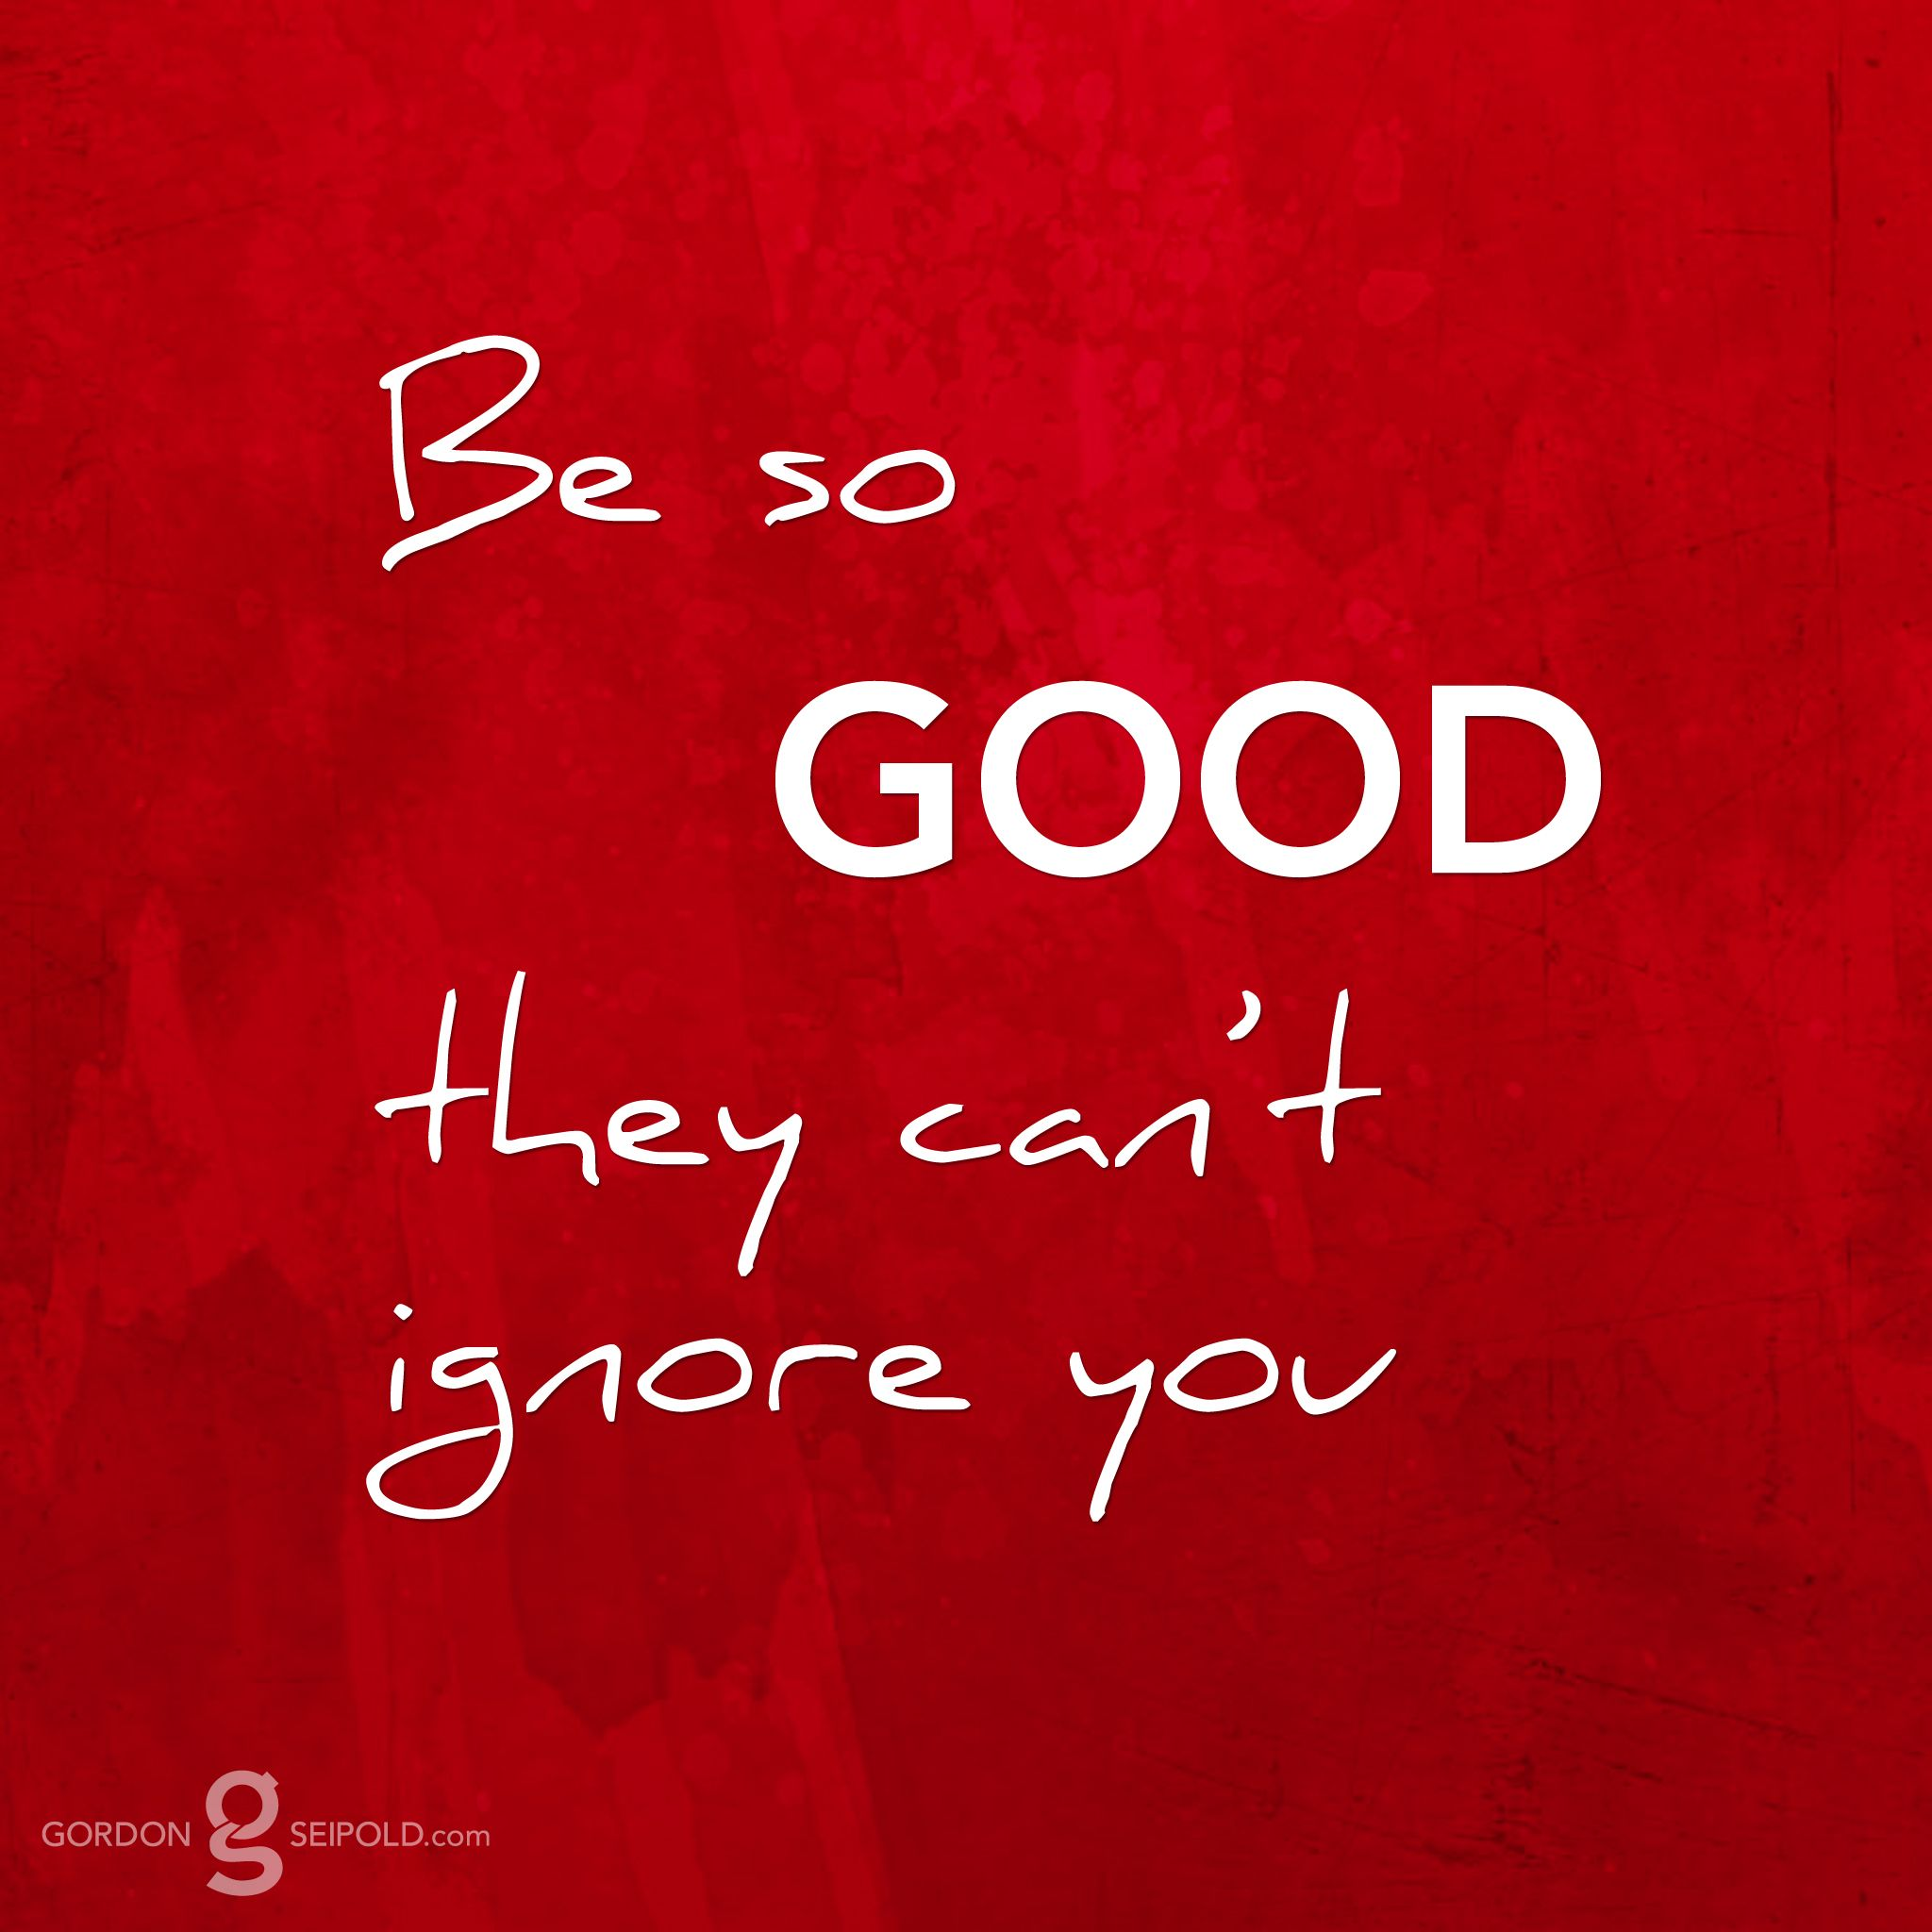 Be so #good they can't ignore you